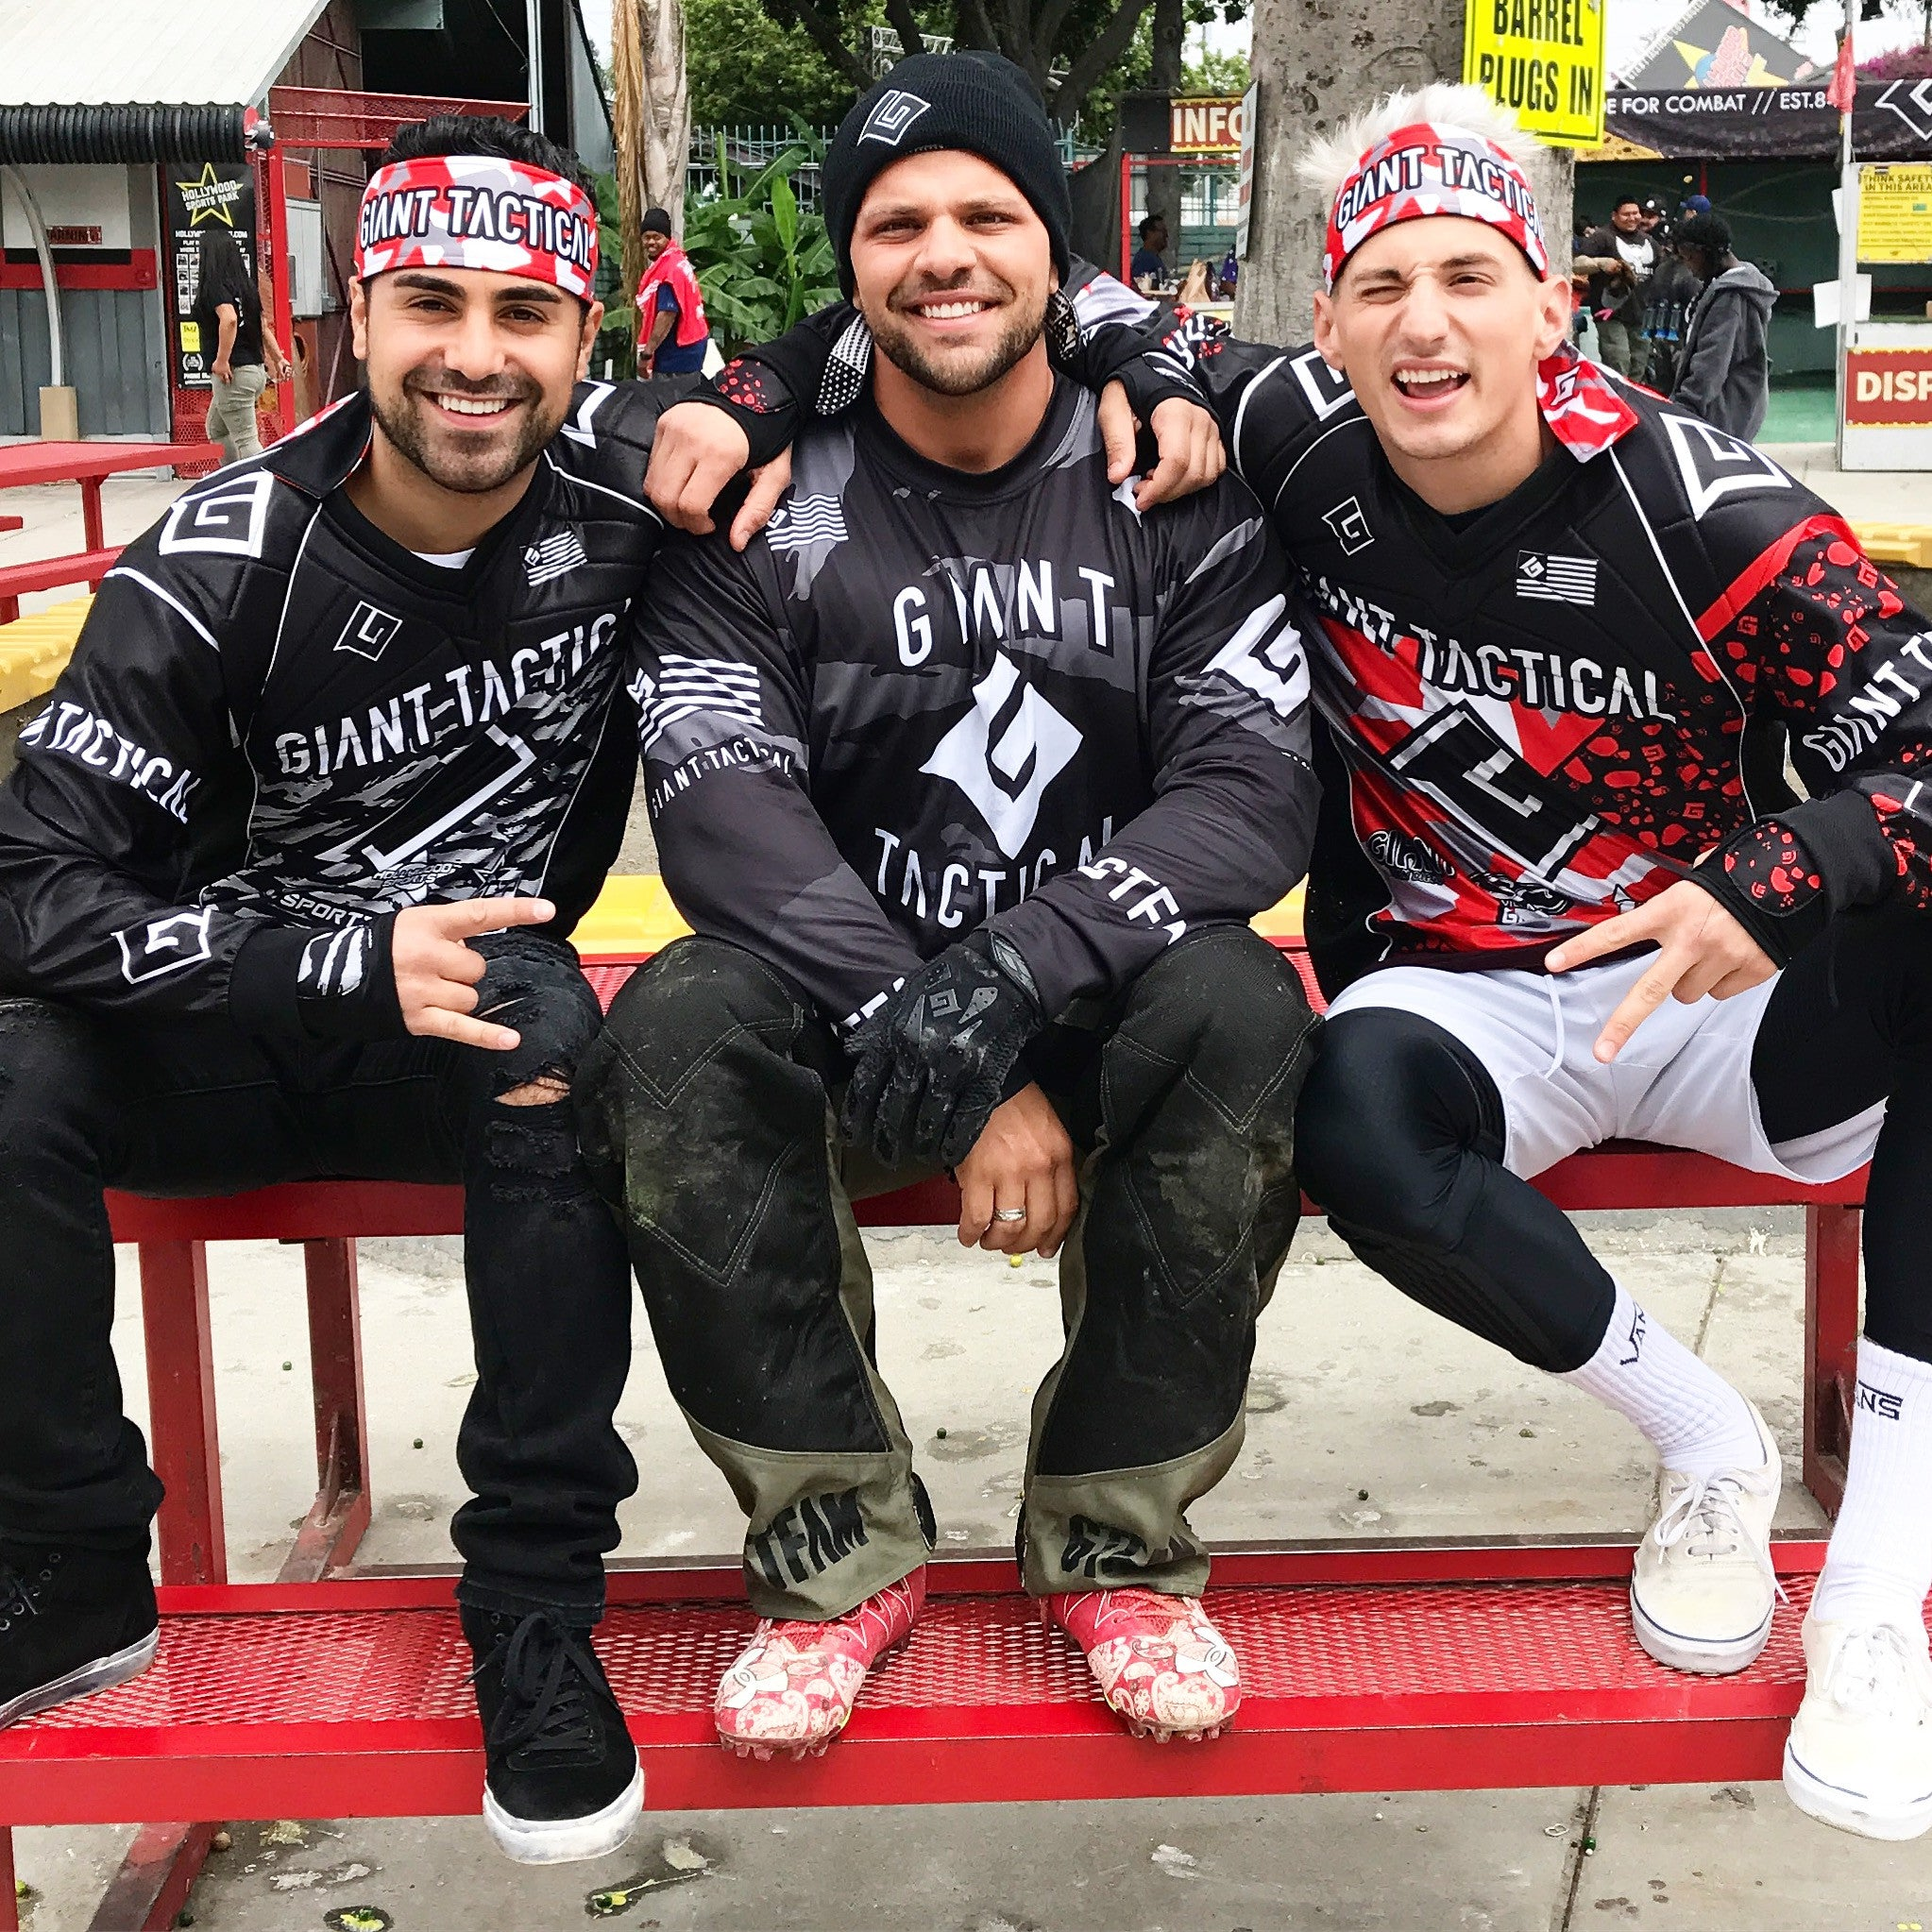 MARK DOHNER AND GEORGE JANKO PLAY PAINTBALL WITH BEAR DEGIDIO AT HOLLYWOOD SPORTS PARK